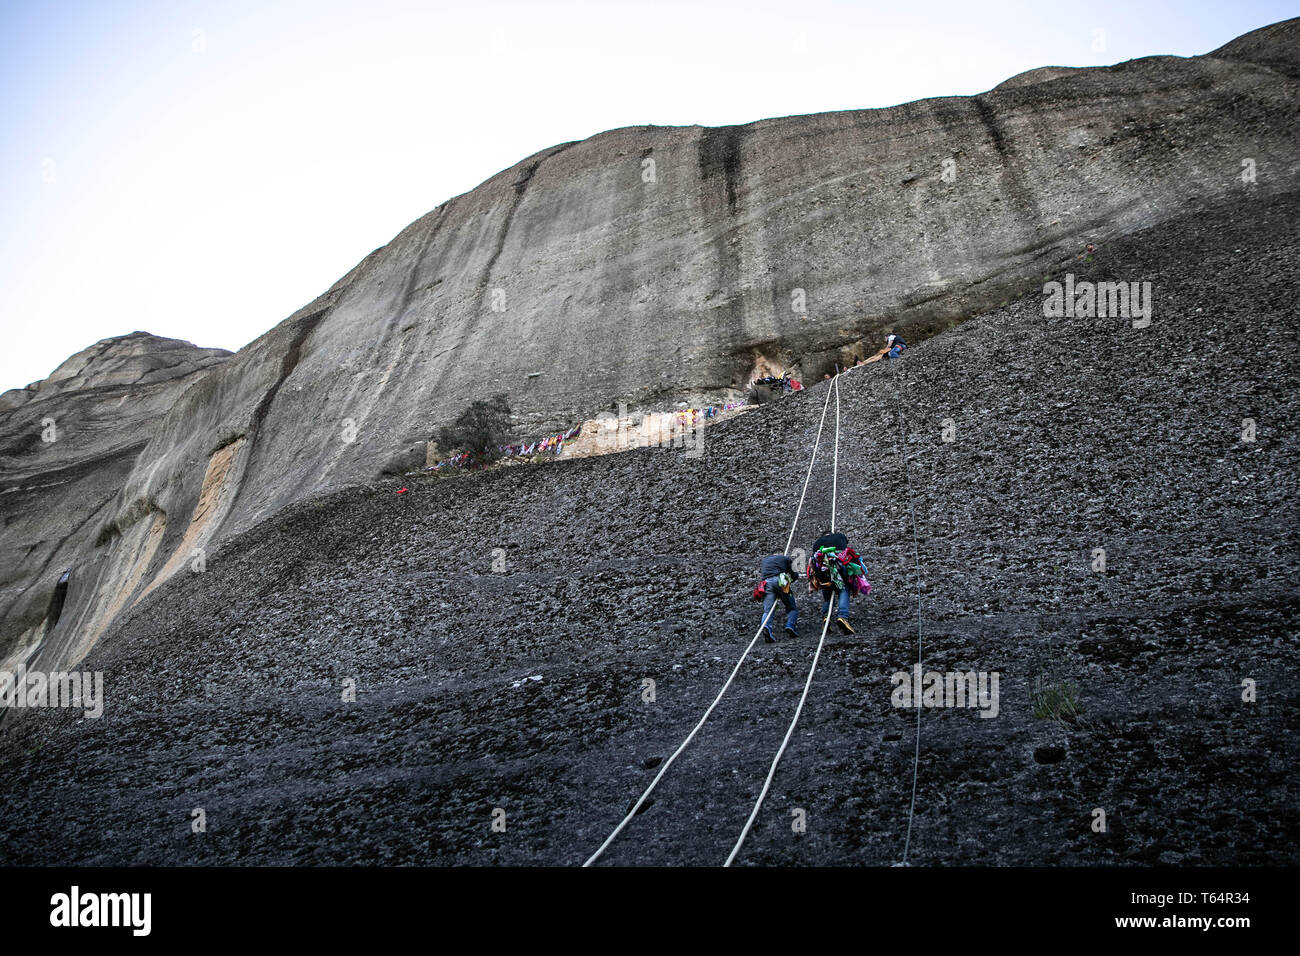 Meteora, Greece. 29th Apr, 2019. Climbers climb up Meteora complex of sandstone cliffs in Kastraki village, central Greece, on April 29, 2019. Following a 300-year traditional custom during the annual celebrations of Saint George's Day, climbers hang colorful scarves near an old ruined monastery built in a cave 40 meters above the village on the sandstone rocks and return with the old ones, which can be given away as a token of good health. Credit: Lefteris Partsalis/Xinhua/Alamy Live News - Stock Image